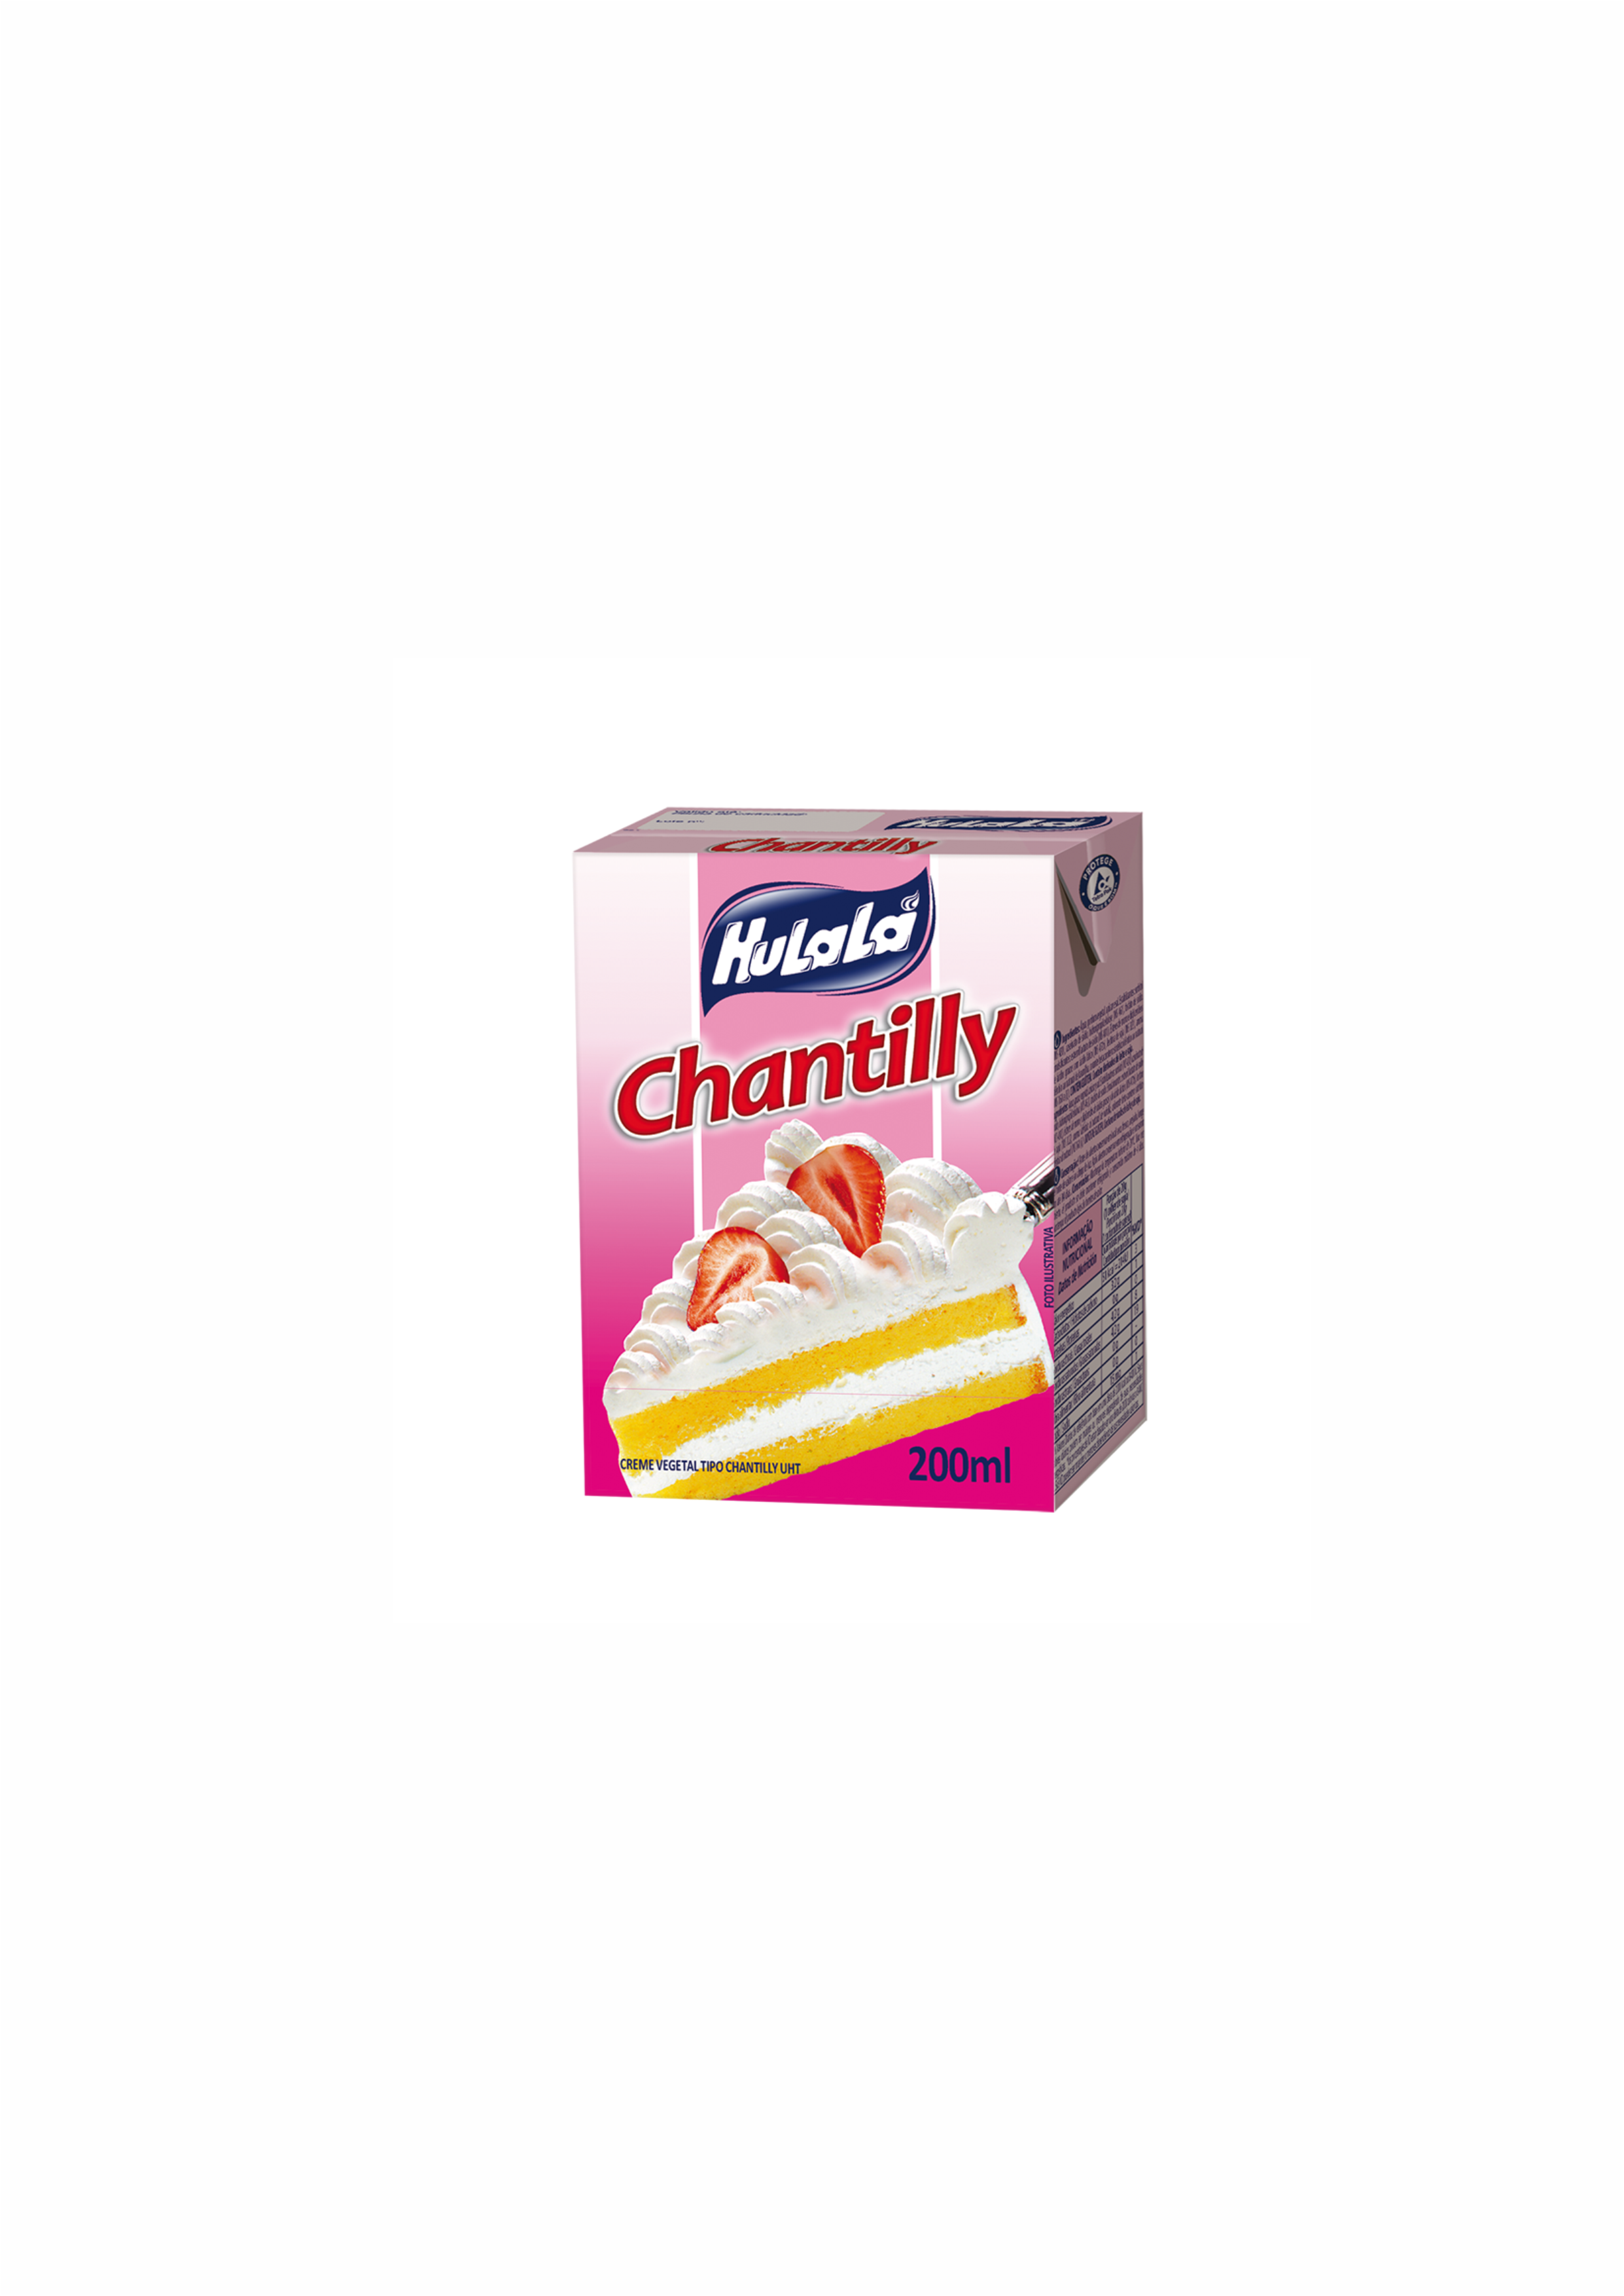 CHANTILLY HULALÁ 200ml